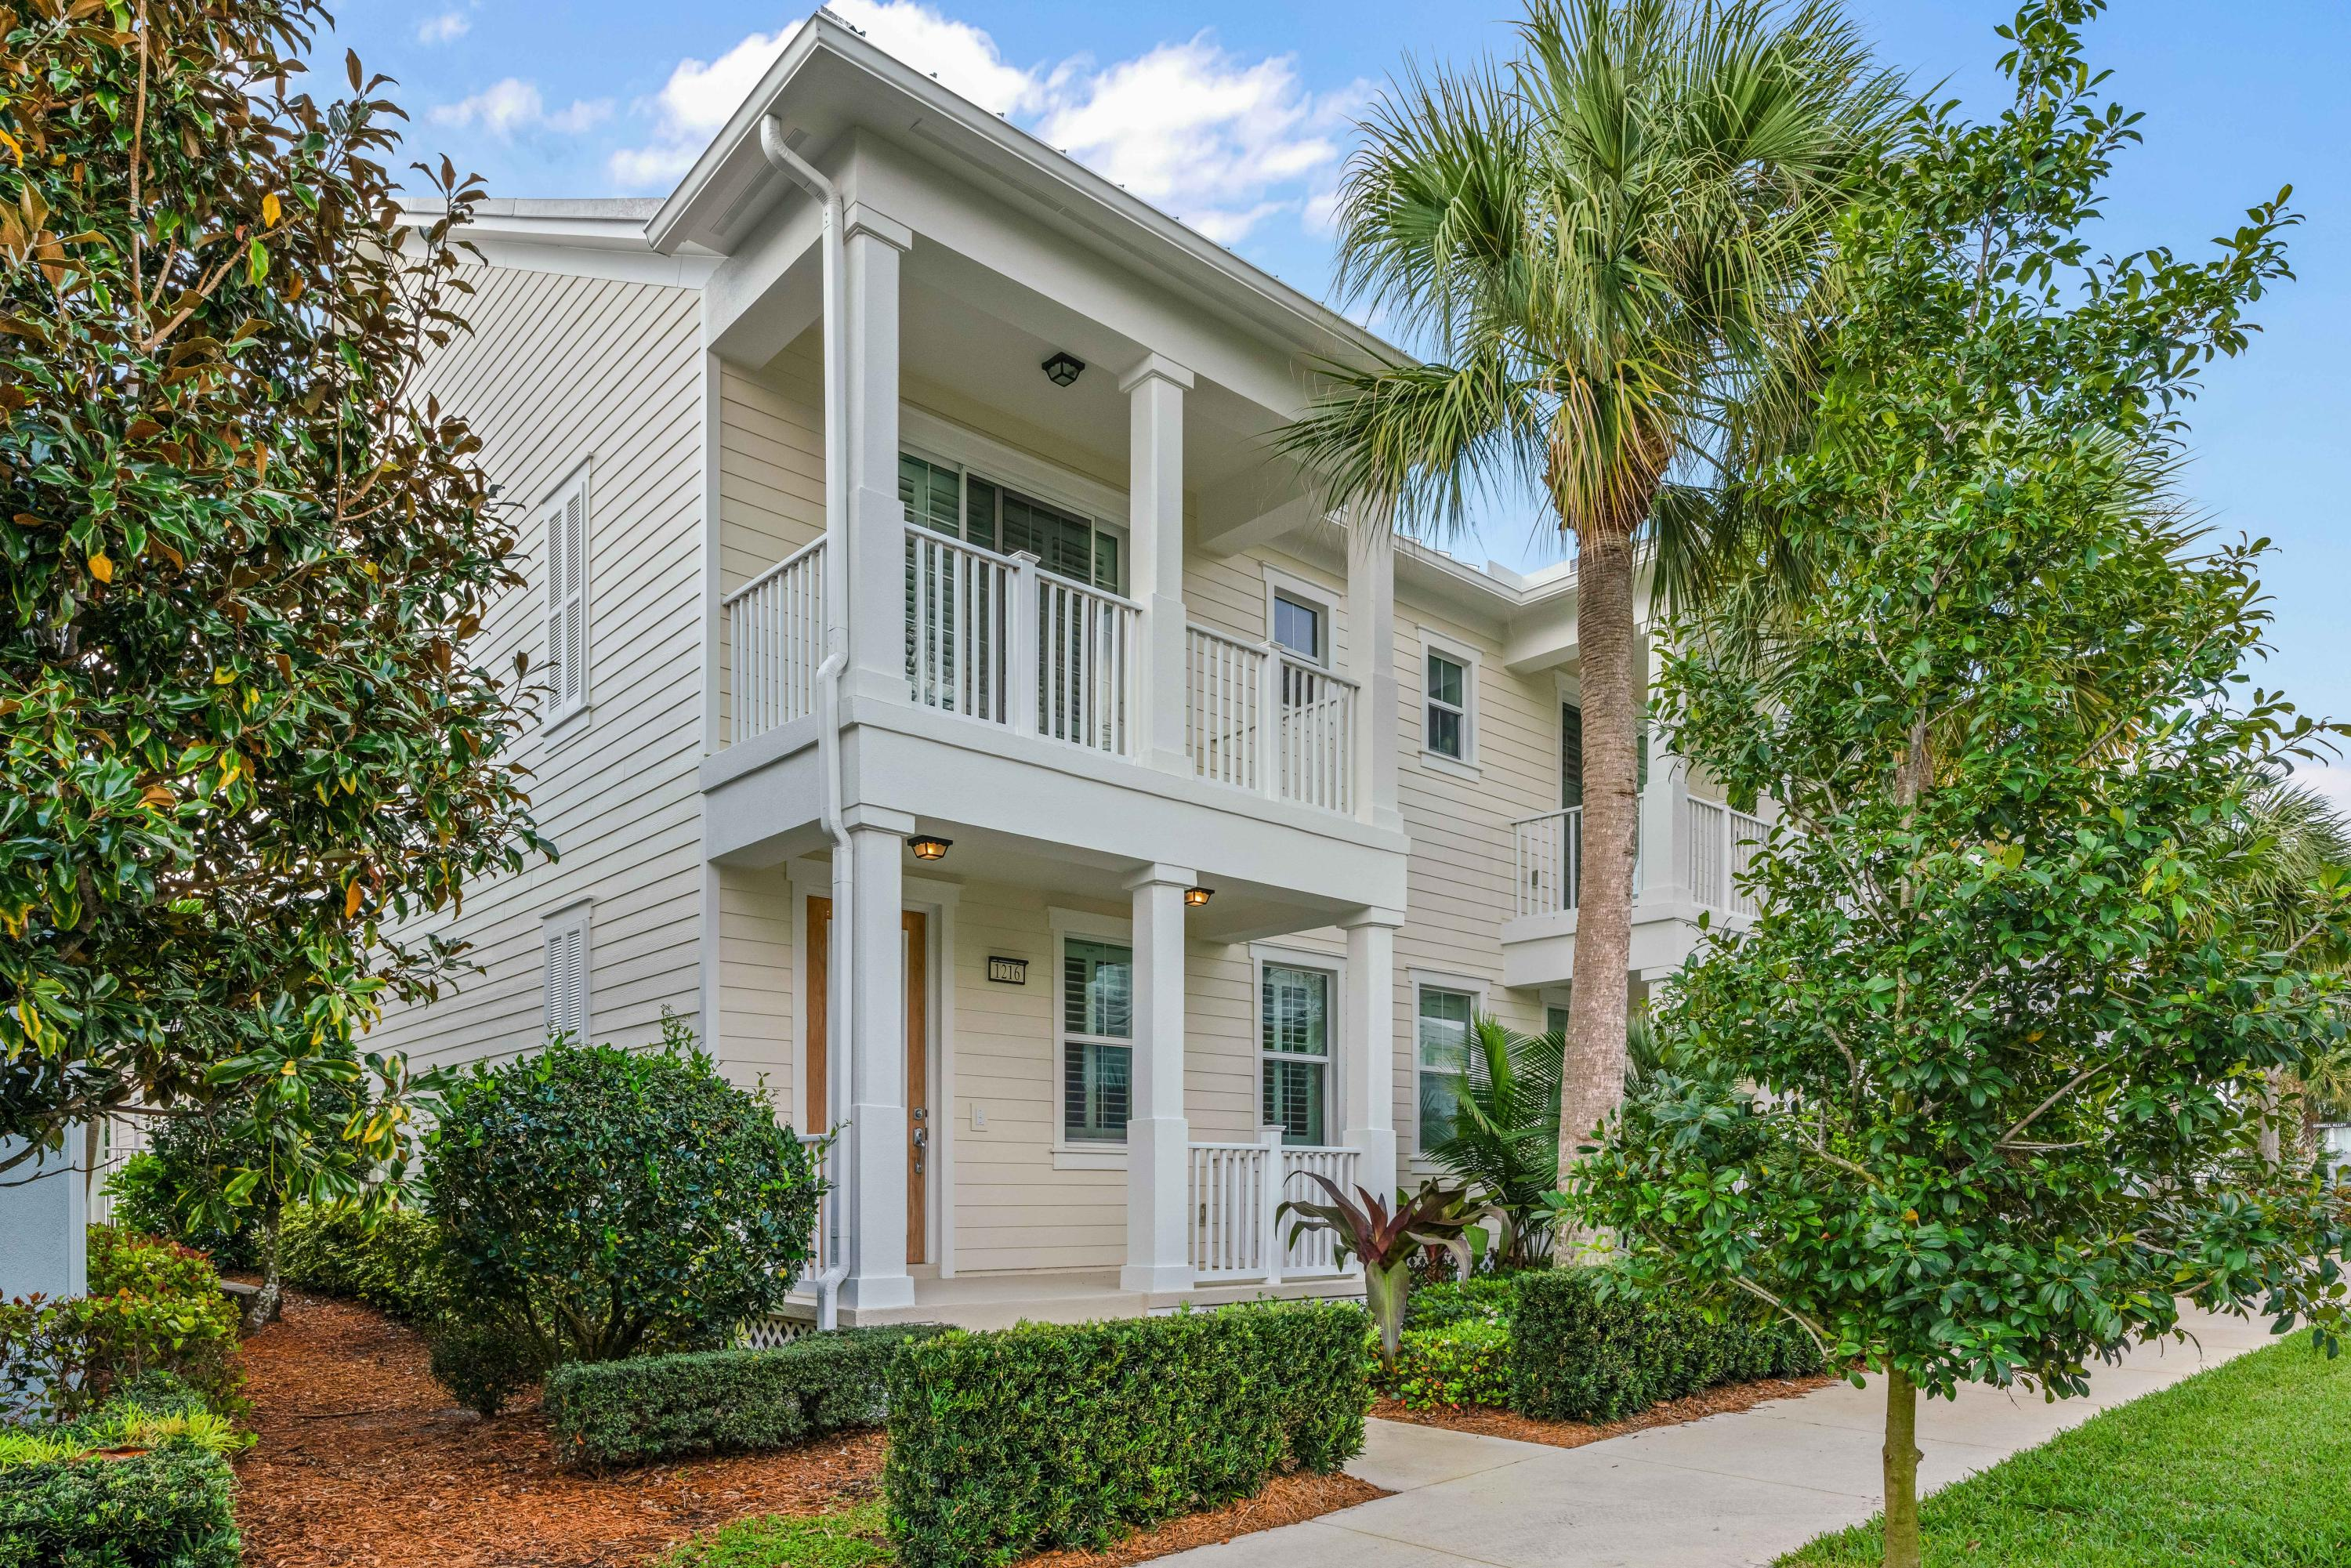 Immaculate DiVosta-built, Nautica model townhome in Mallory Creek at Abacoa! This 3 bedroom 2 and 1/2 bath townhouse features all impact-rated windows and doors, plantation shutters, custom light fixtures, an open kitchen with center island, granite countertops, and stainless appliances, all finished downstairs with beautiful tile floors. Upstairs the spacious Master suite opens to a private balcony, walk-in closet with custom built-ins, and en-suite Master bath with dual sinks. Two additional guest bedrooms share a full bath with dual sinks and tiled shower tub. Relax on the Southern-exposure, freshly painted, private patio leading to a full, two-car garage with built-out attic space, additional storage, and paver driveway. New AC in 2016 with upgraded UV filtration system! Enjoy all that Mallory Creek has to offer : club house, community pool, fitness center, playground, plus the dining, shopping, and entertainment of Abacoa, and much more!